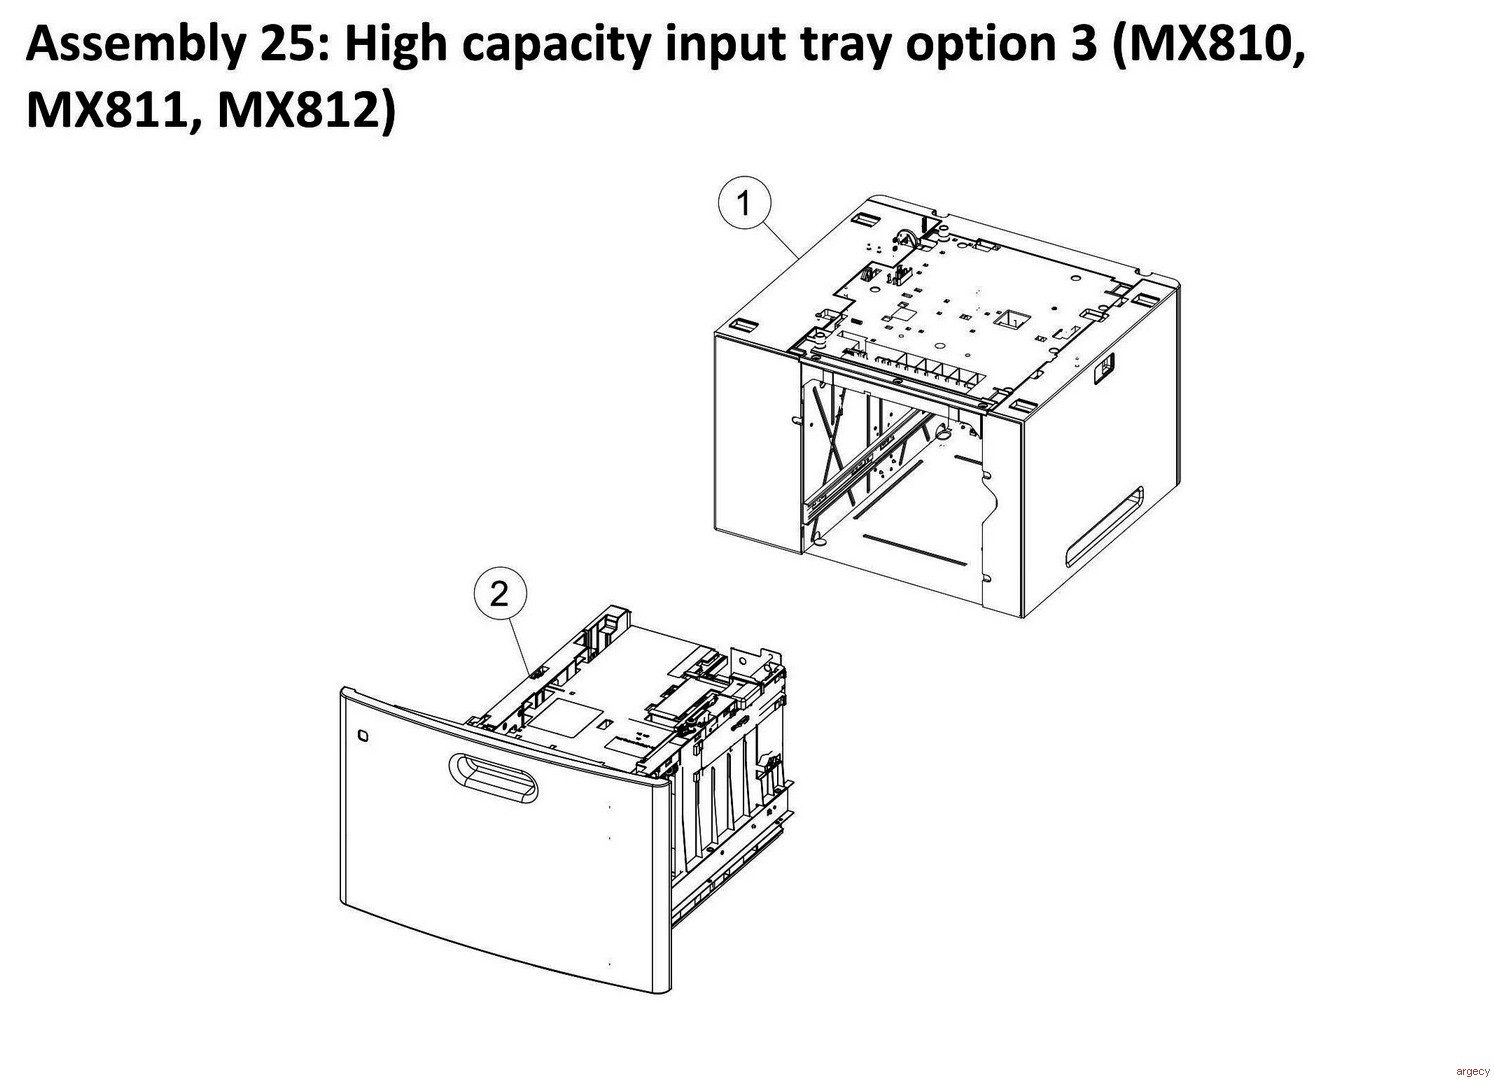 http://www.argecy.com/images/MX81x_MX71x-Parts-737_cr.jpg